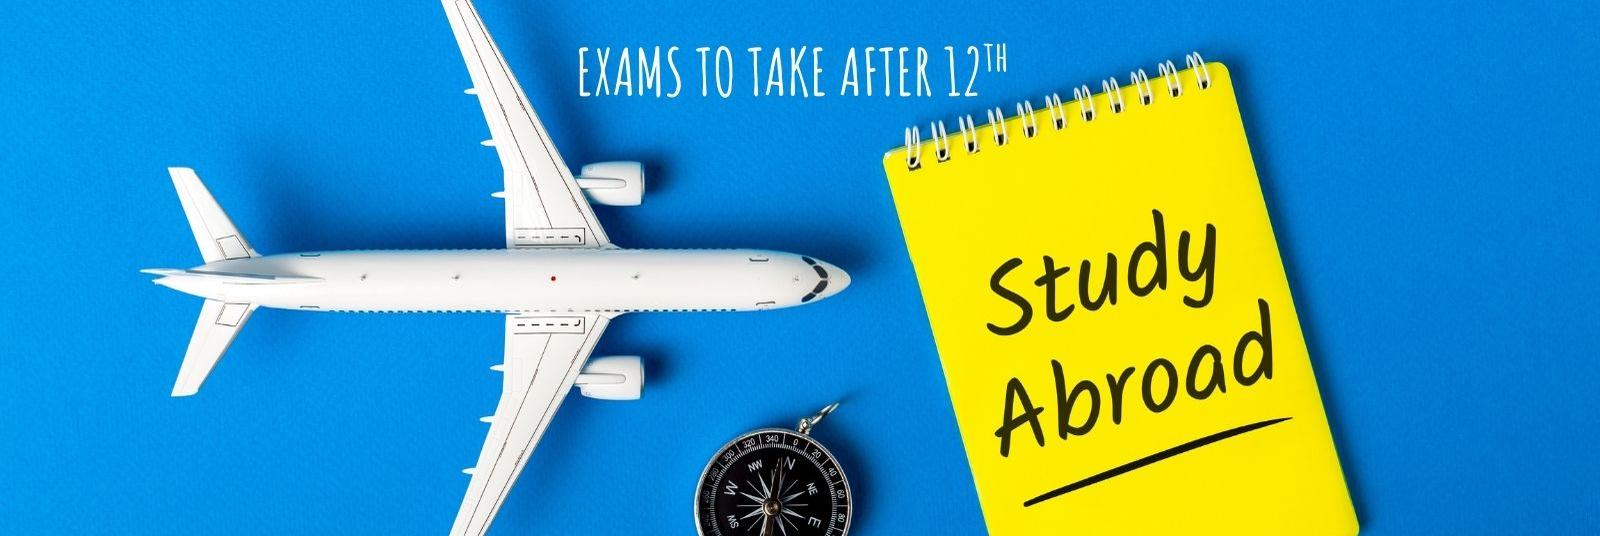 Exams you should take to study abroad after 12th